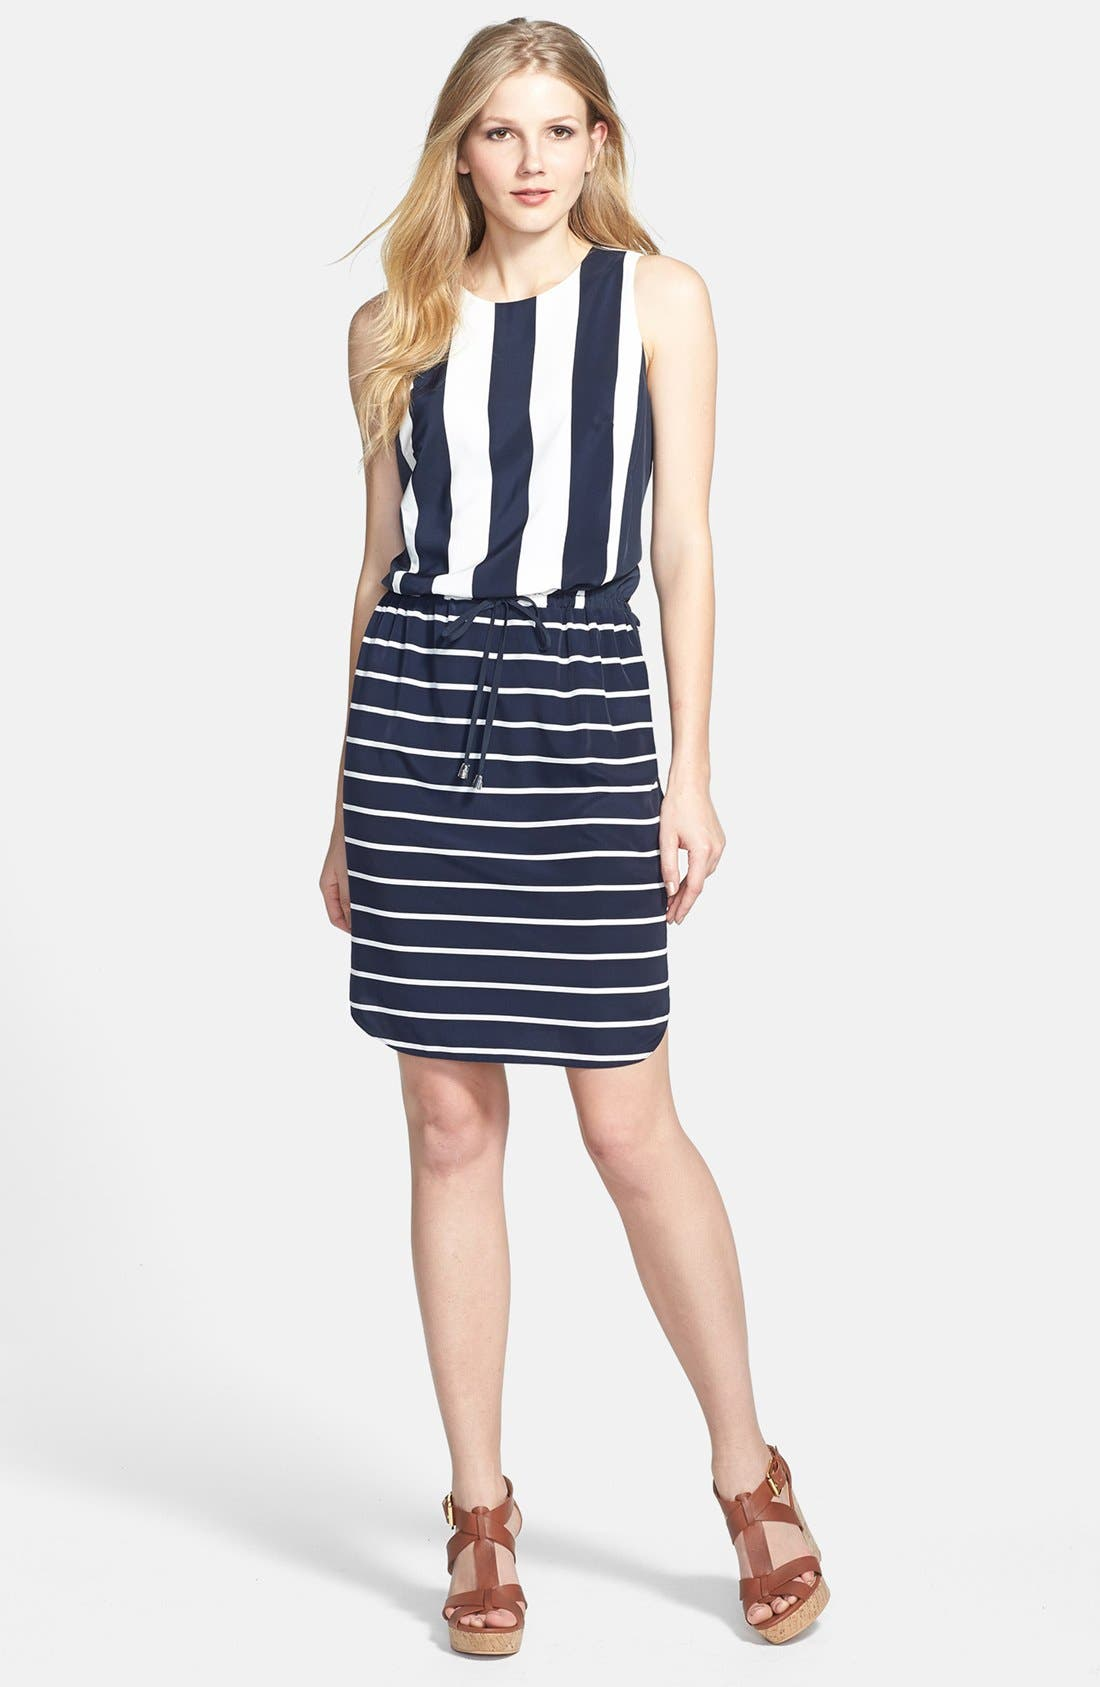 Alternate Image 1 Selected - Vince Camuto 'Yacht Stripe' Mixed Print Dress (Regular & Petite)